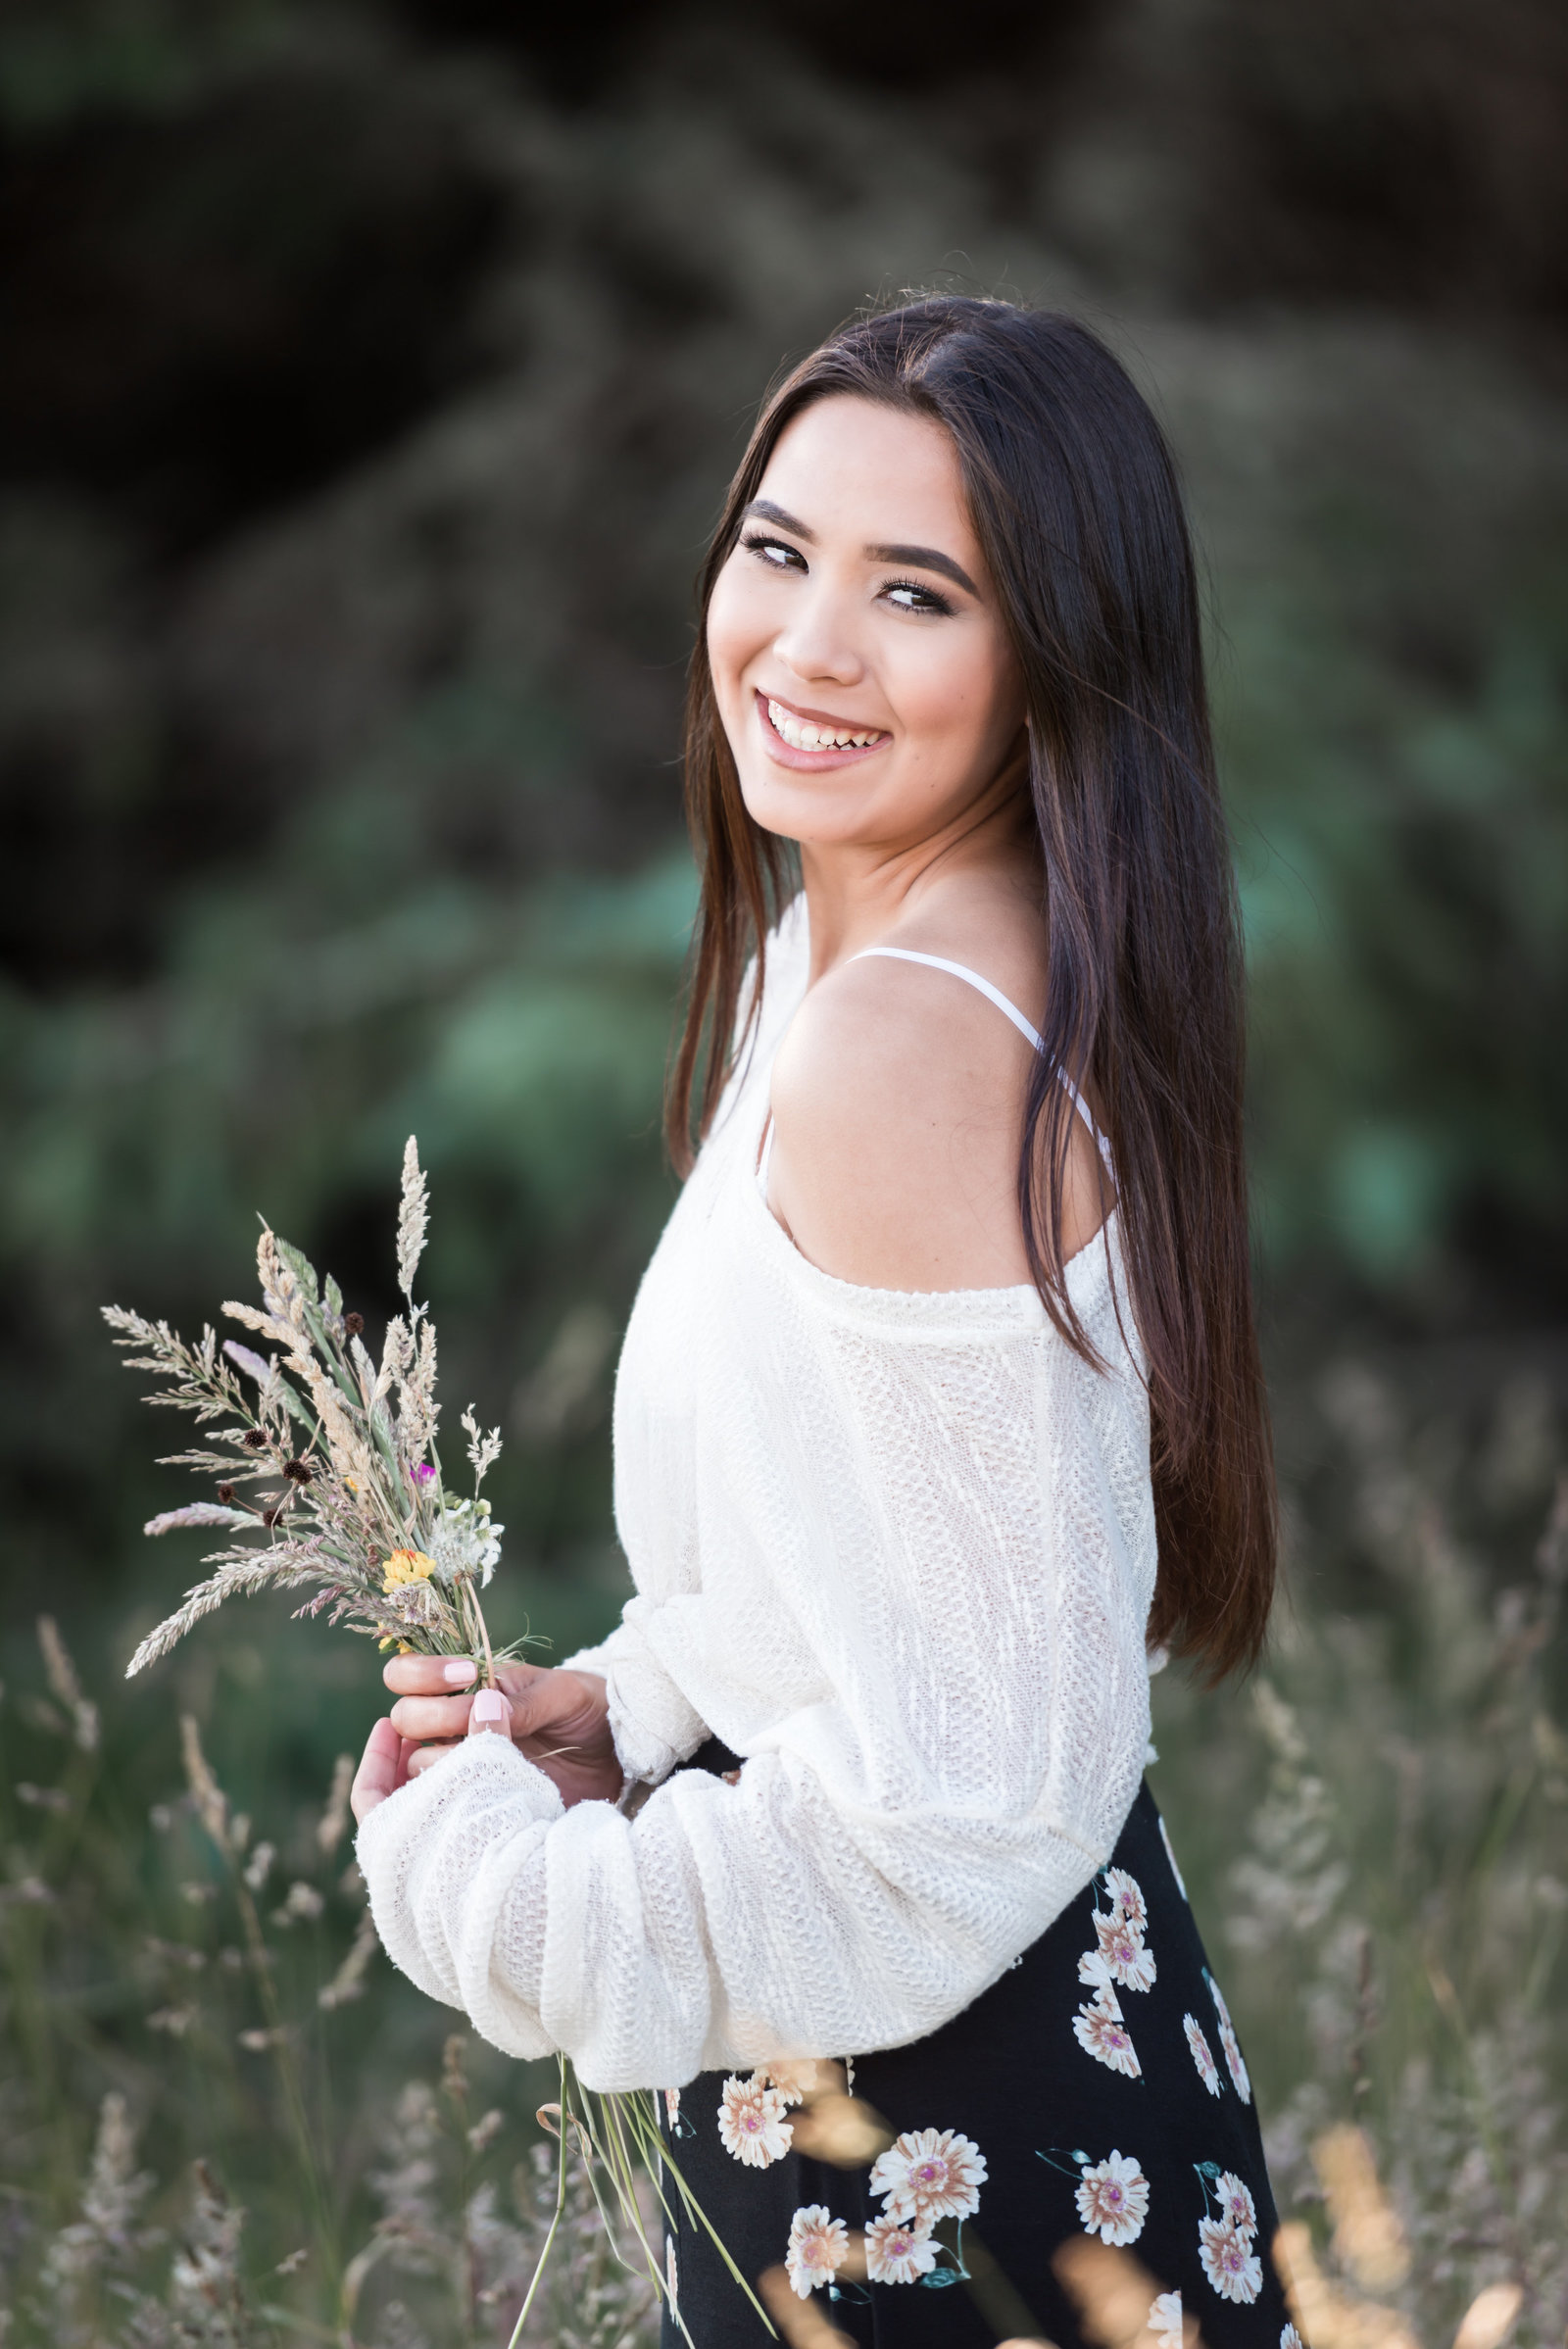 tara-brown-photography-senior-photos_Cannon-Beach-Stefani_061616_33-Edit